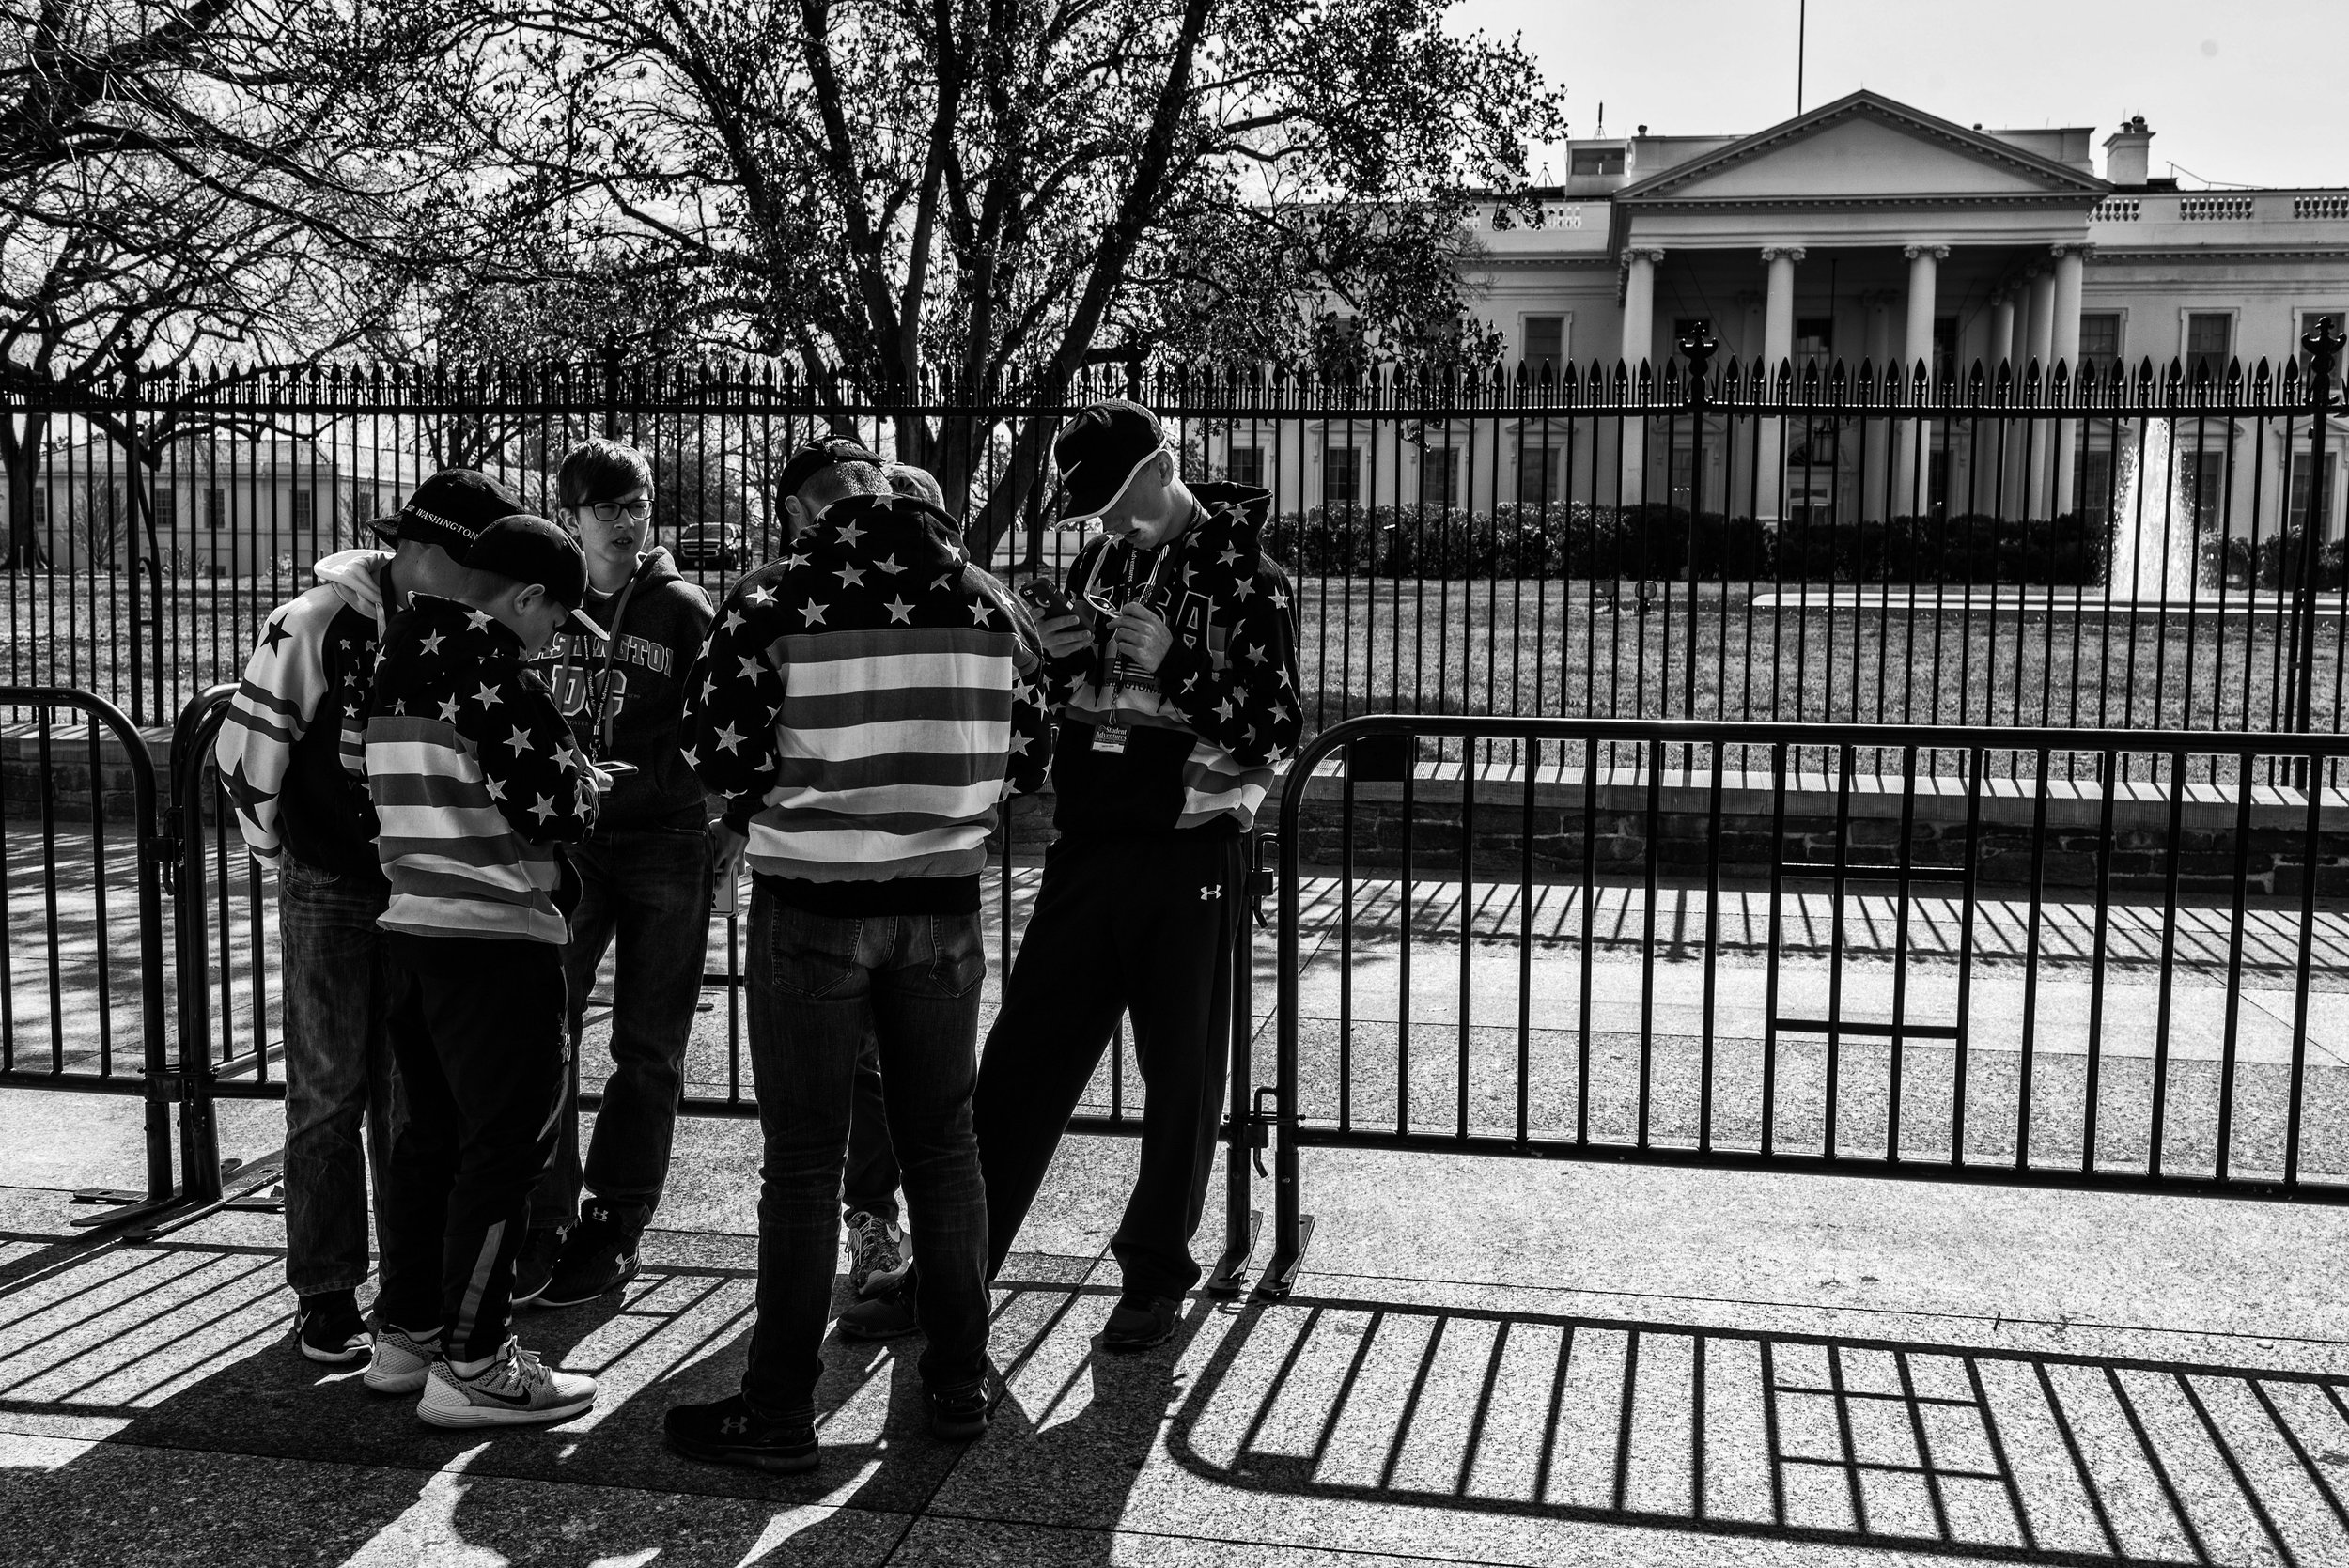 Day 46 : Tourists gathered outside the White House, on March 6, 2017.